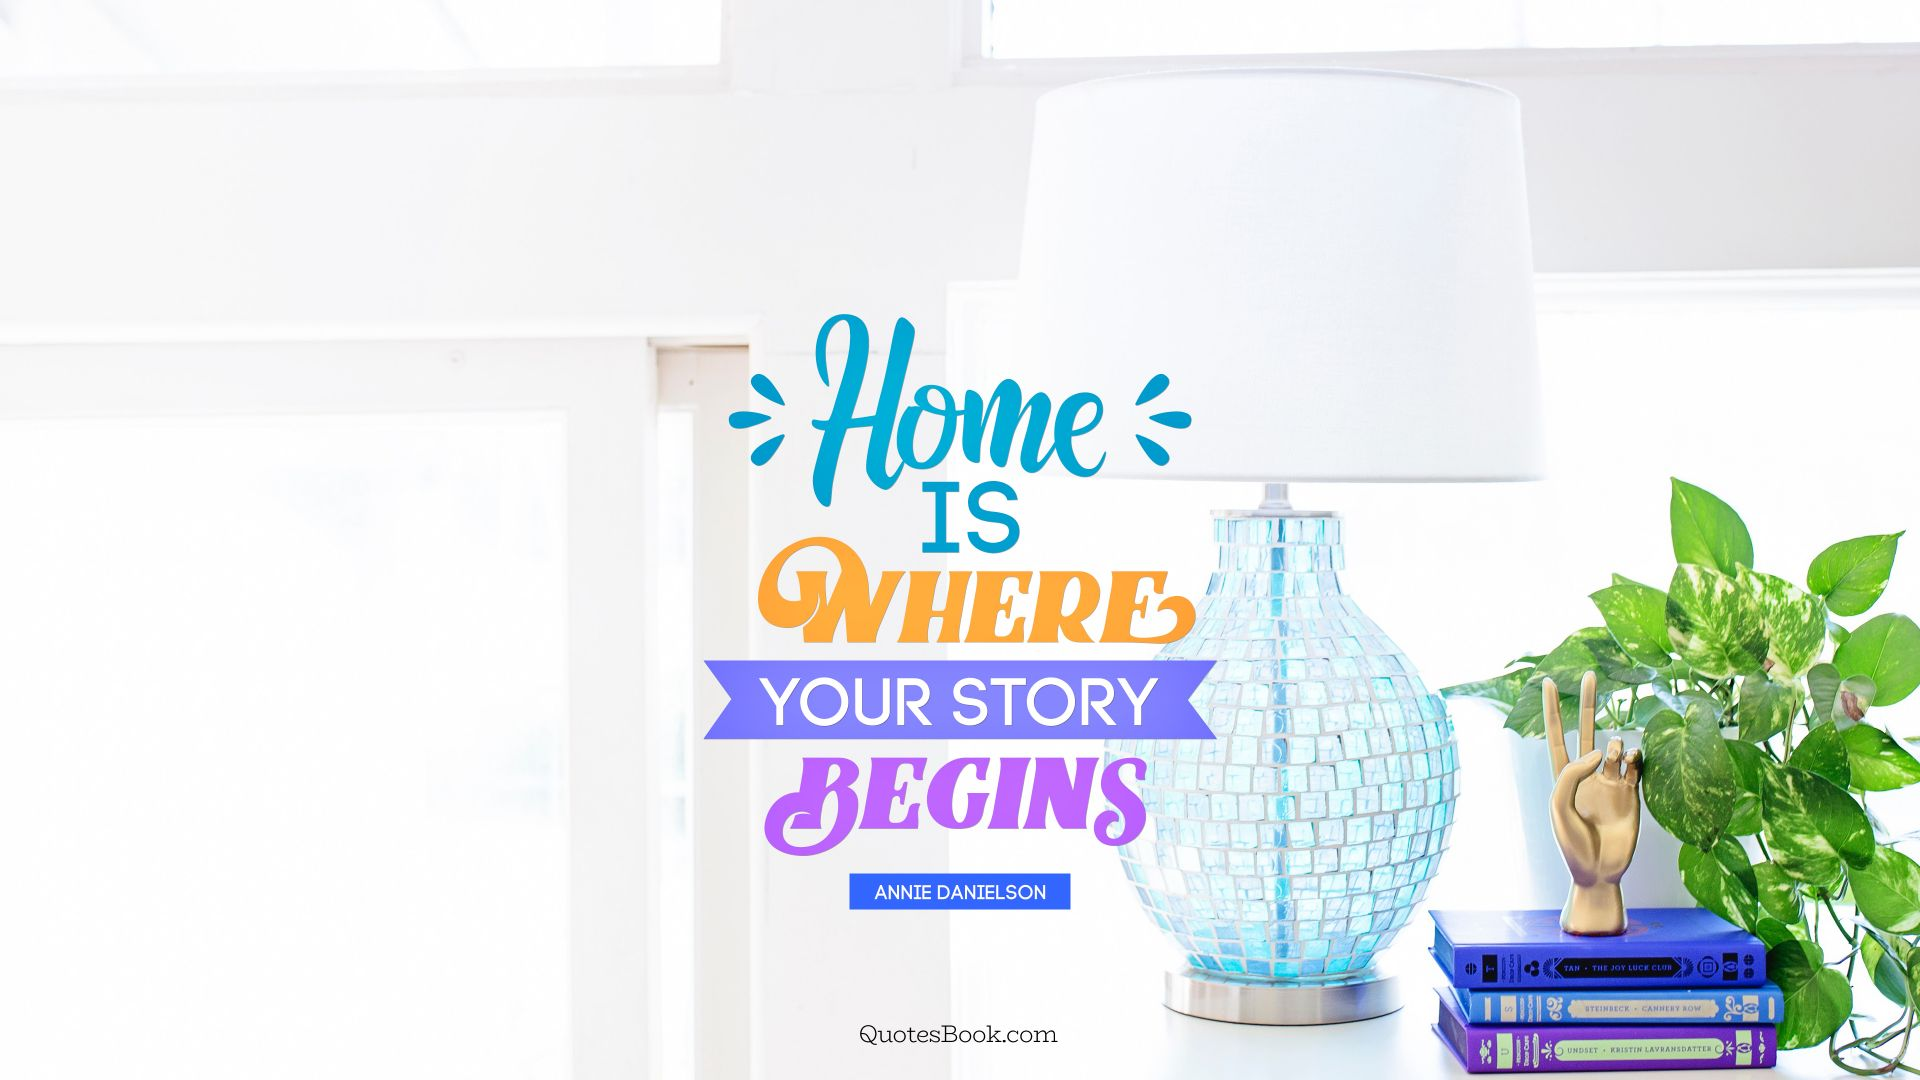 Home is where your story begins. - Quote by Annie Danielson